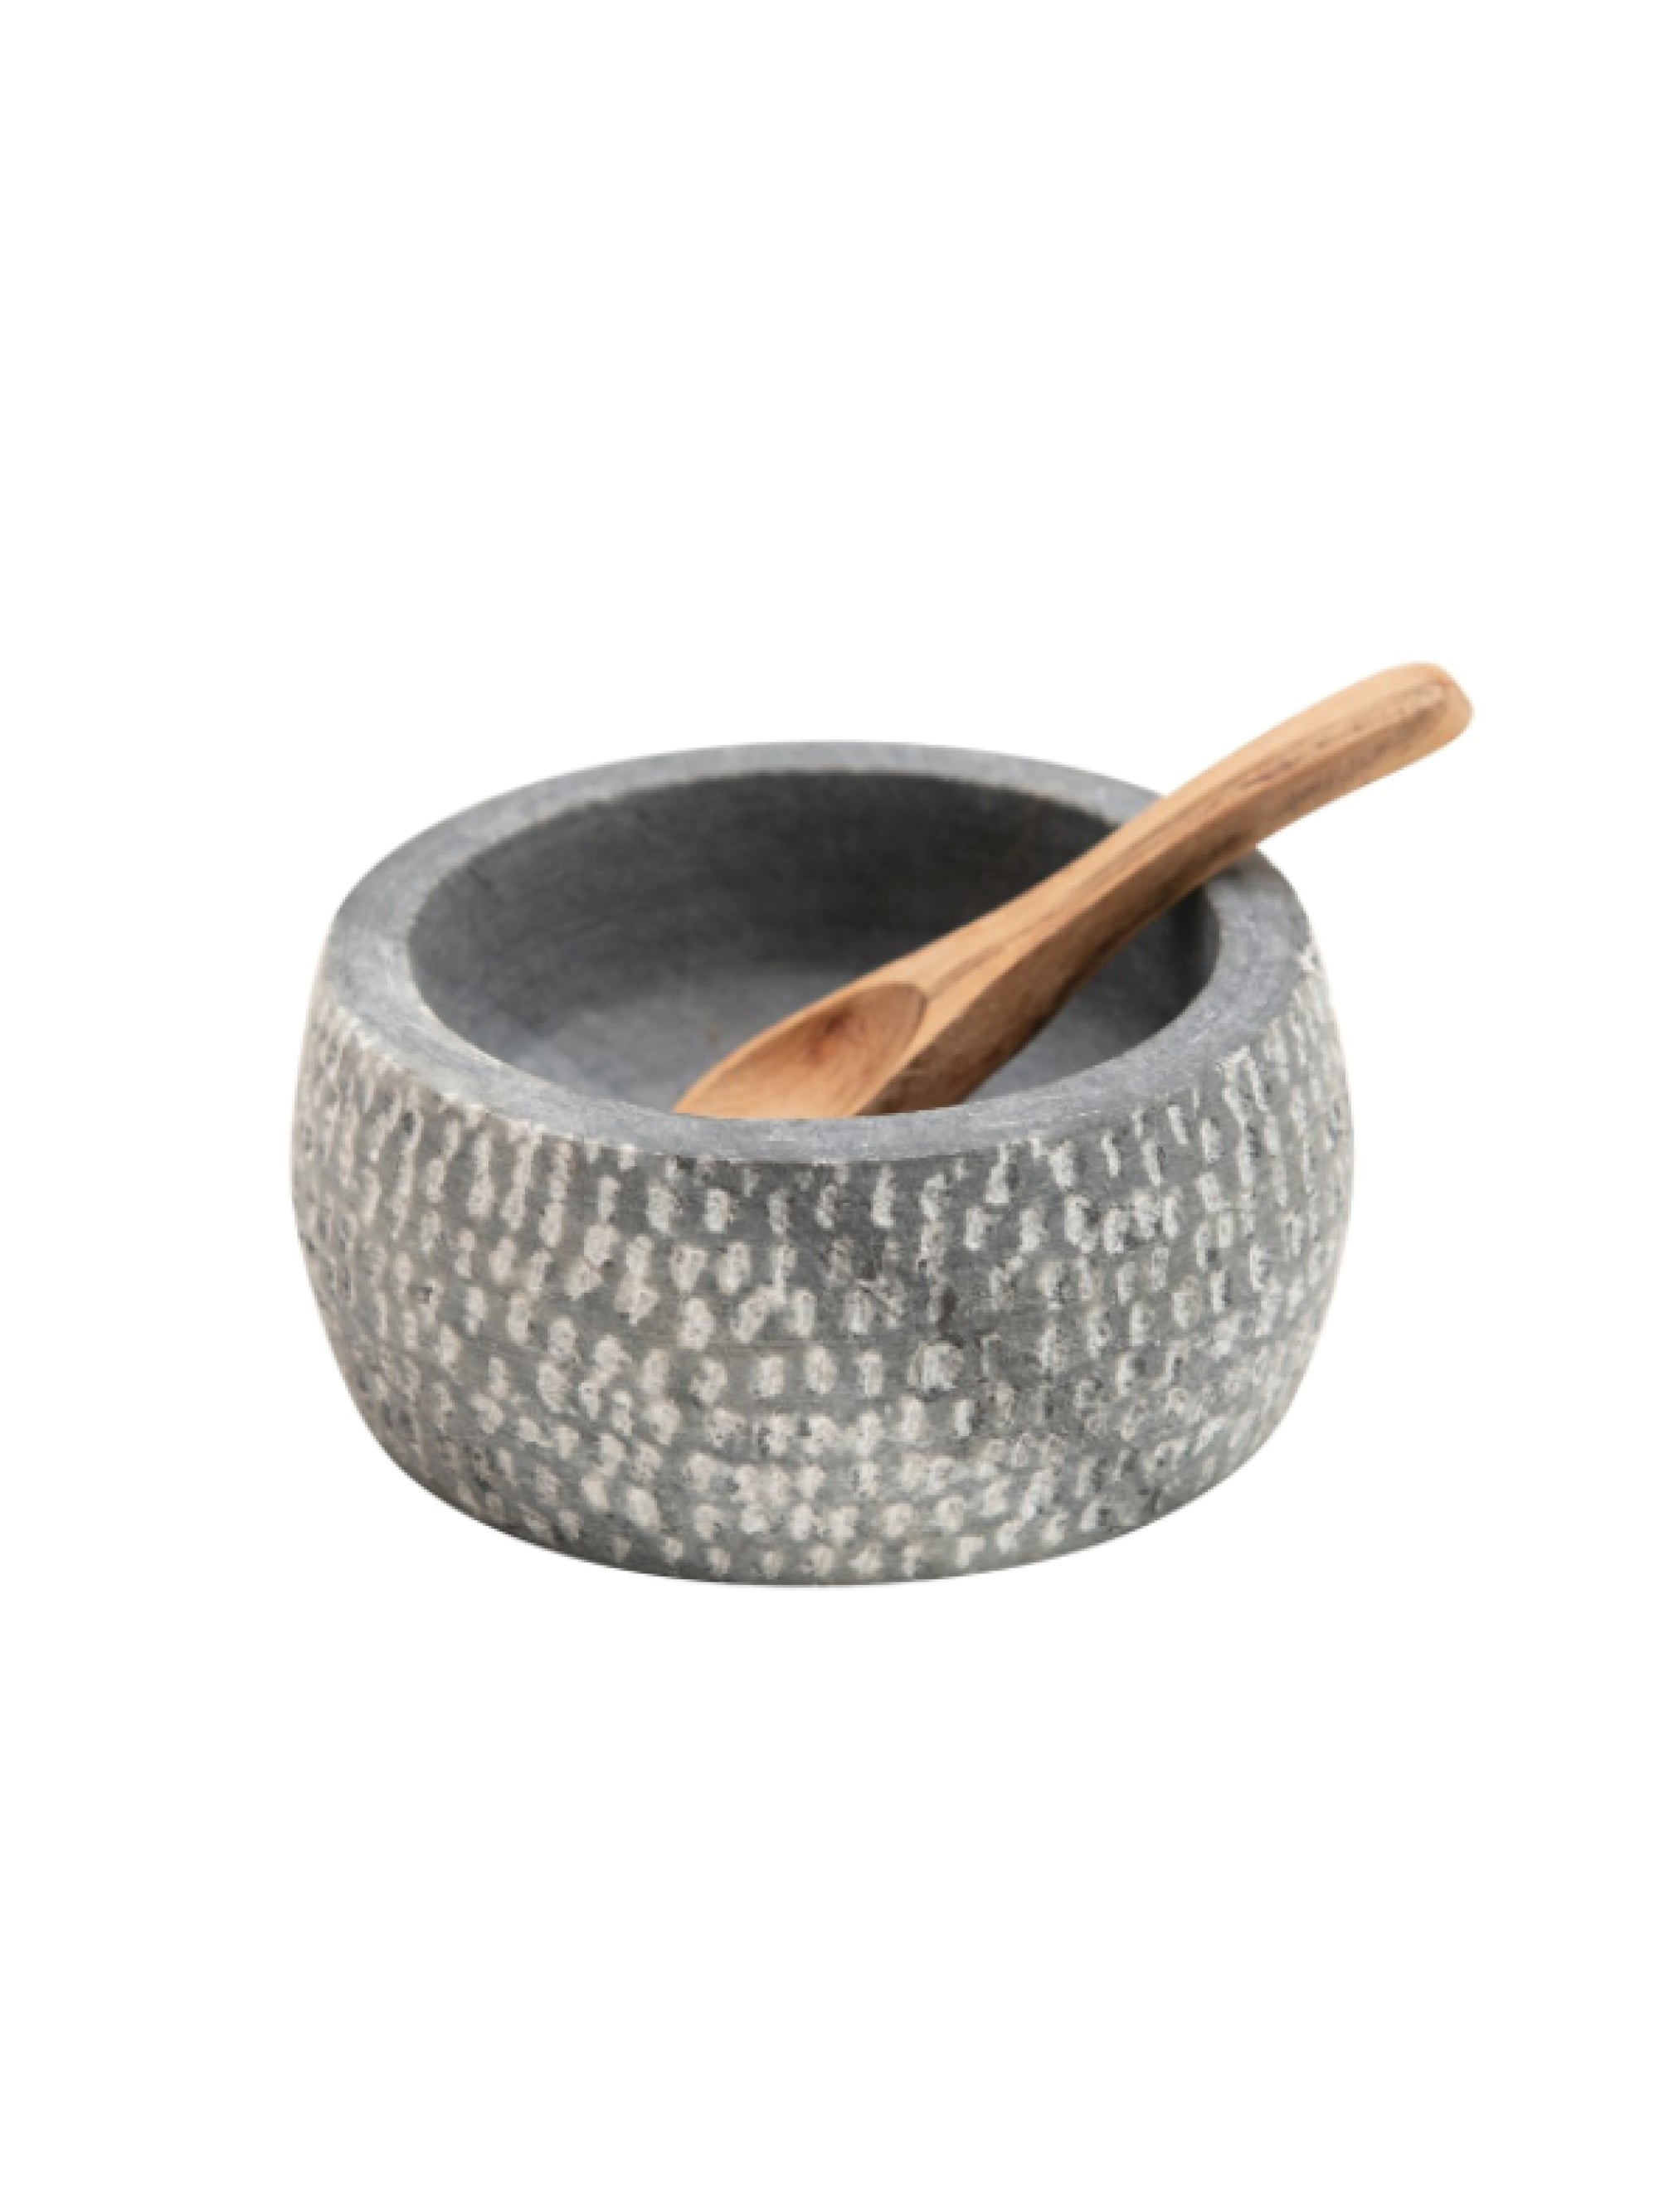 Granite Bowl with Carved Wood Spoon